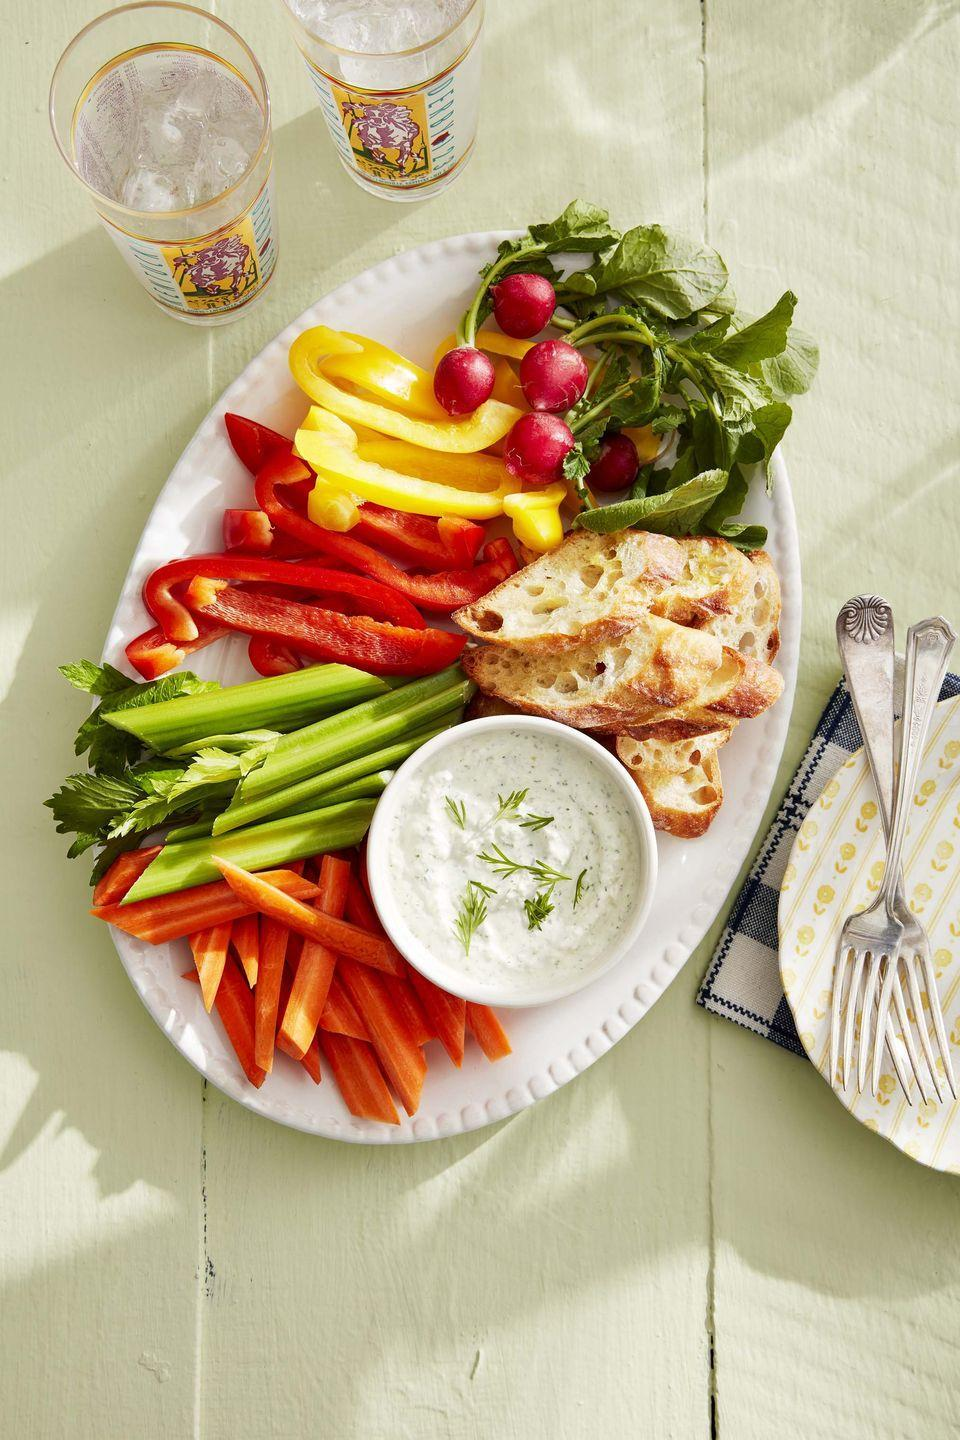 """<p>Invented by Louisville caterer and tea room-owner Jennie Carter Benedict, this cream cheese-cucumber dip is a century-old Kentucky classic.</p><p><strong><a href=""""https://www.countryliving.com/food-drinks/a32042586/benedictine-spread/"""" rel=""""nofollow noopener"""" target=""""_blank"""" data-ylk=""""slk:Get the recipe"""" class=""""link rapid-noclick-resp"""">Get the recipe</a>.</strong></p>"""